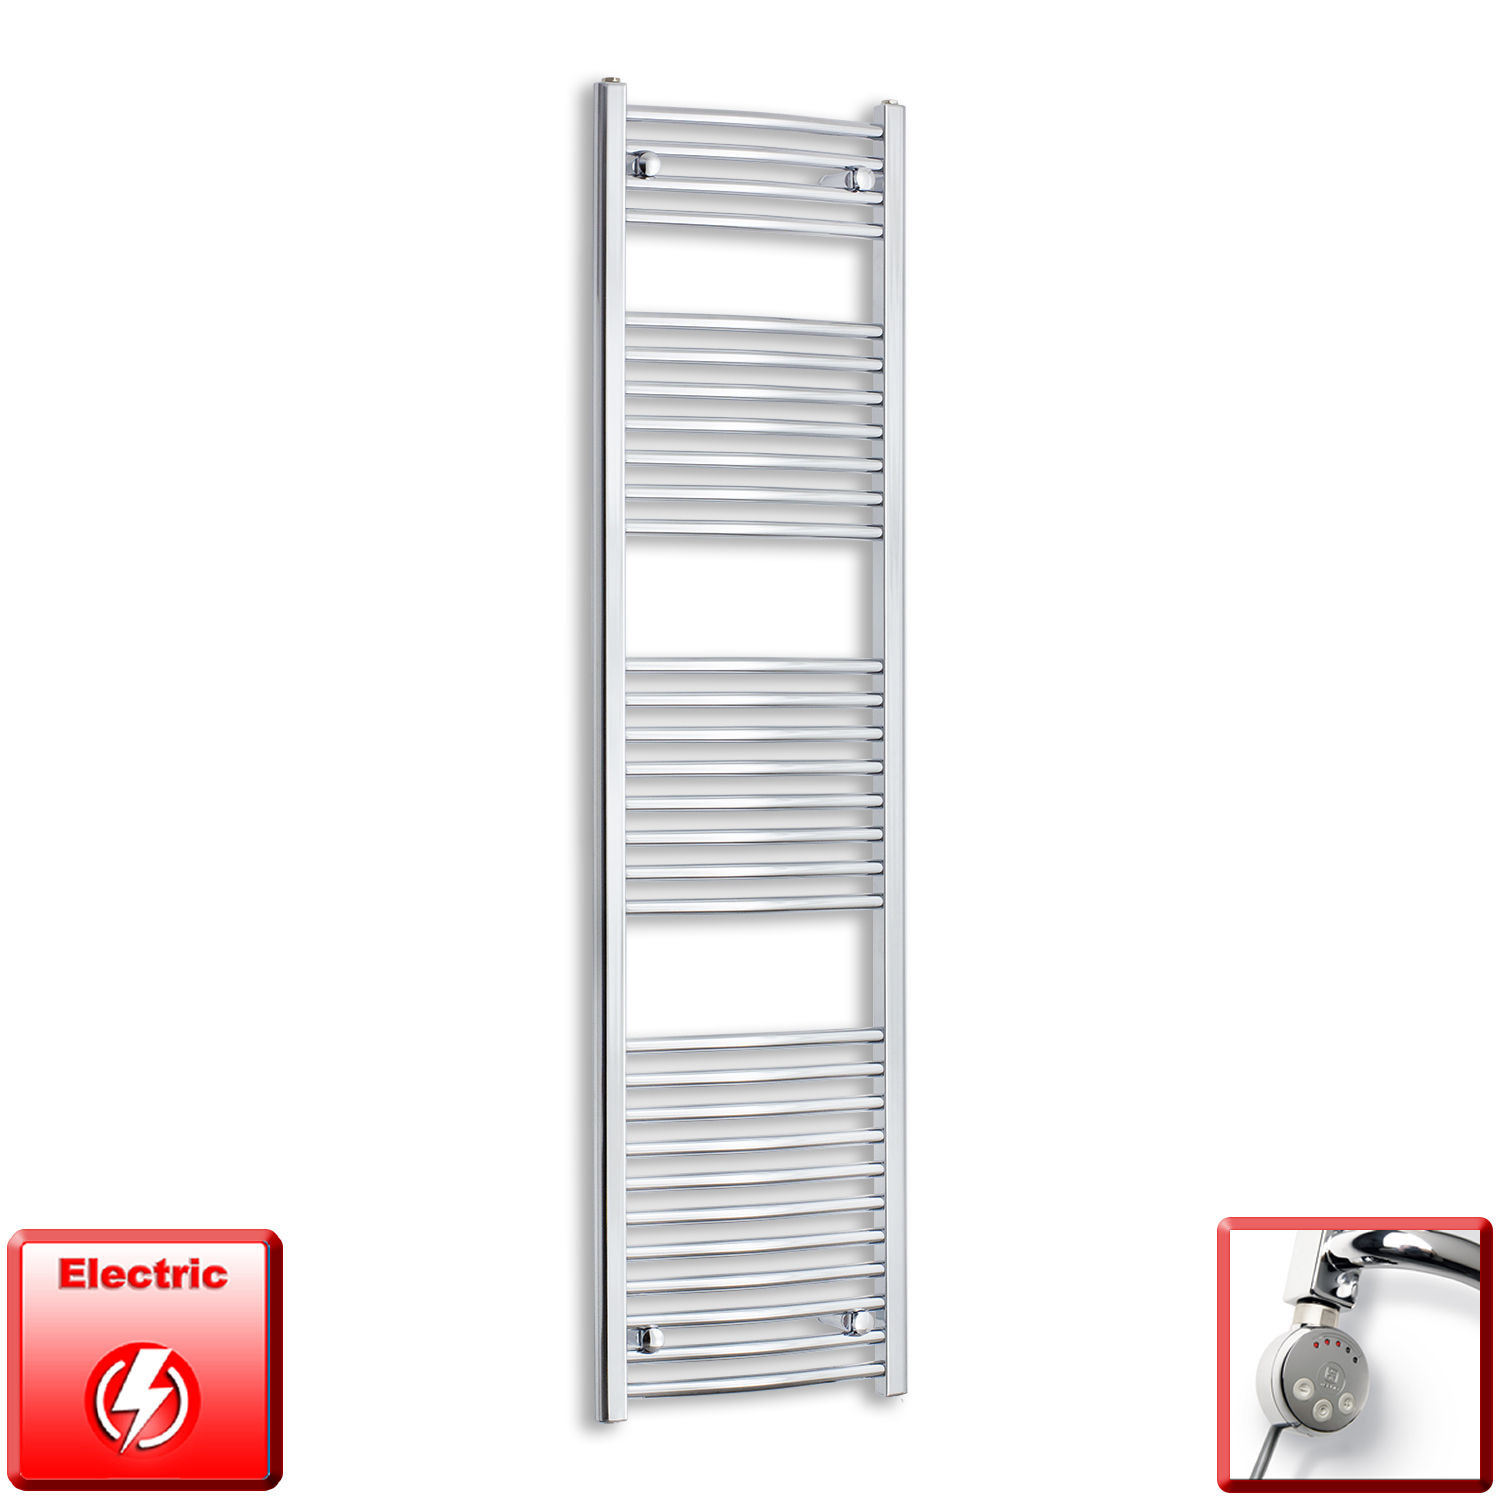 450mm Wide 1700mm High Flat Or Curved Chrome Pre-Filled Electric Heated Towel Rail Radiator HTR,MEG Thermostatic Element / Straight